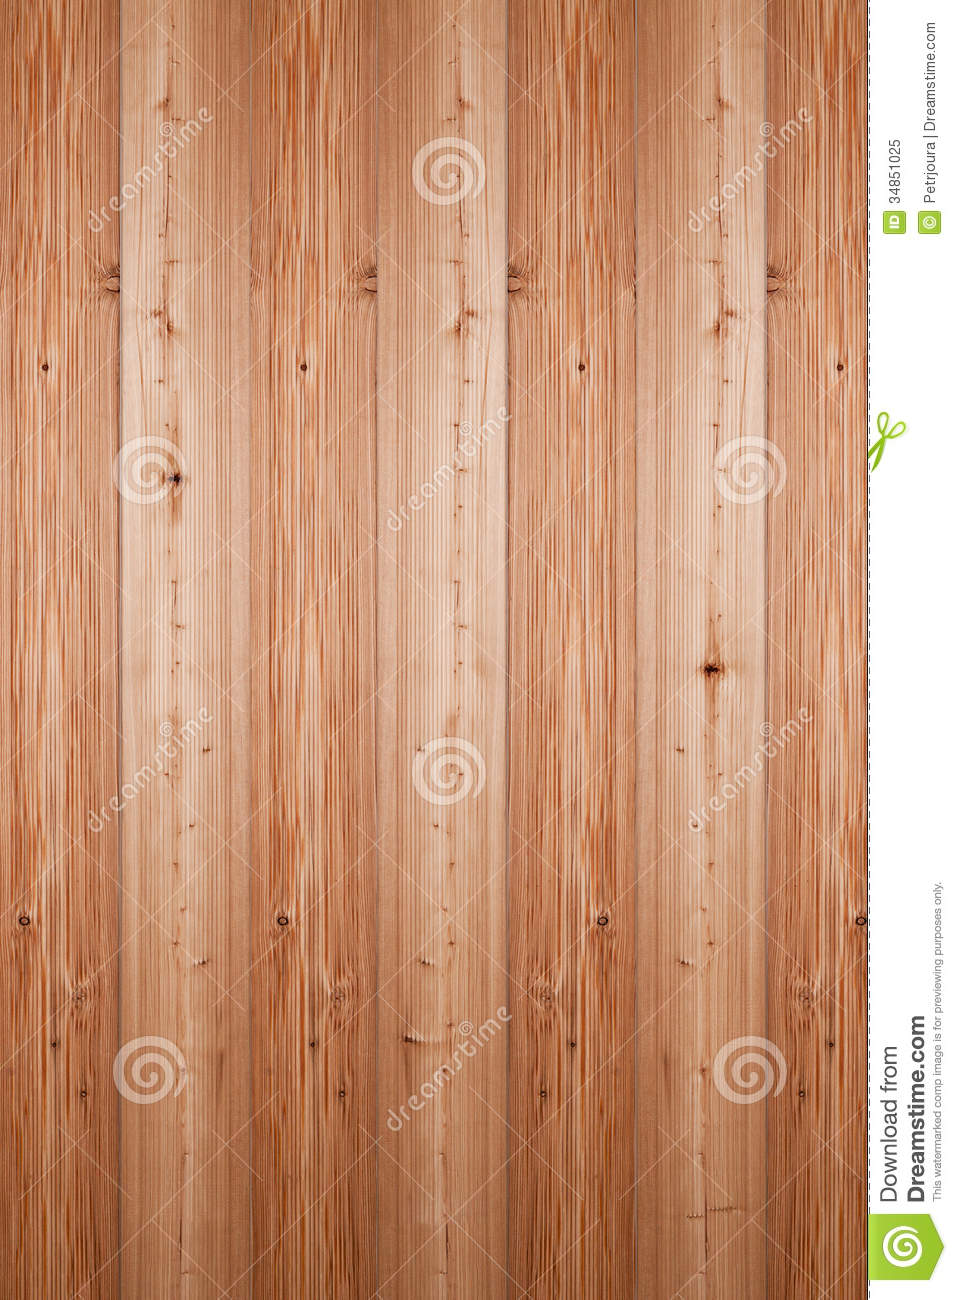 Wood texture background terrace floor royalty free stock for Terrace texture